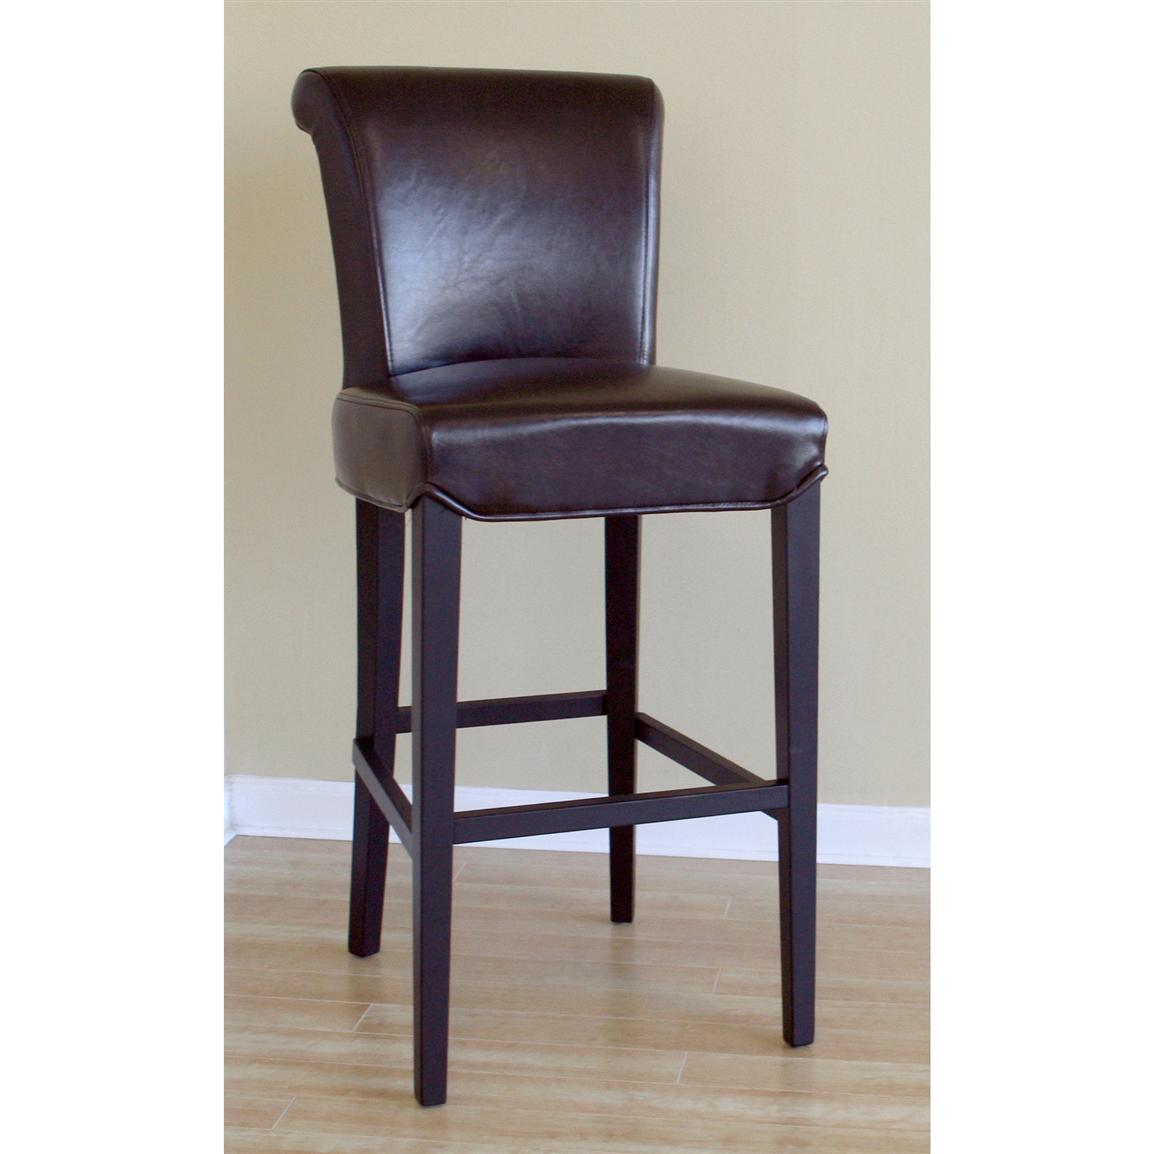 Soft Dark Brown Stool Saymixe